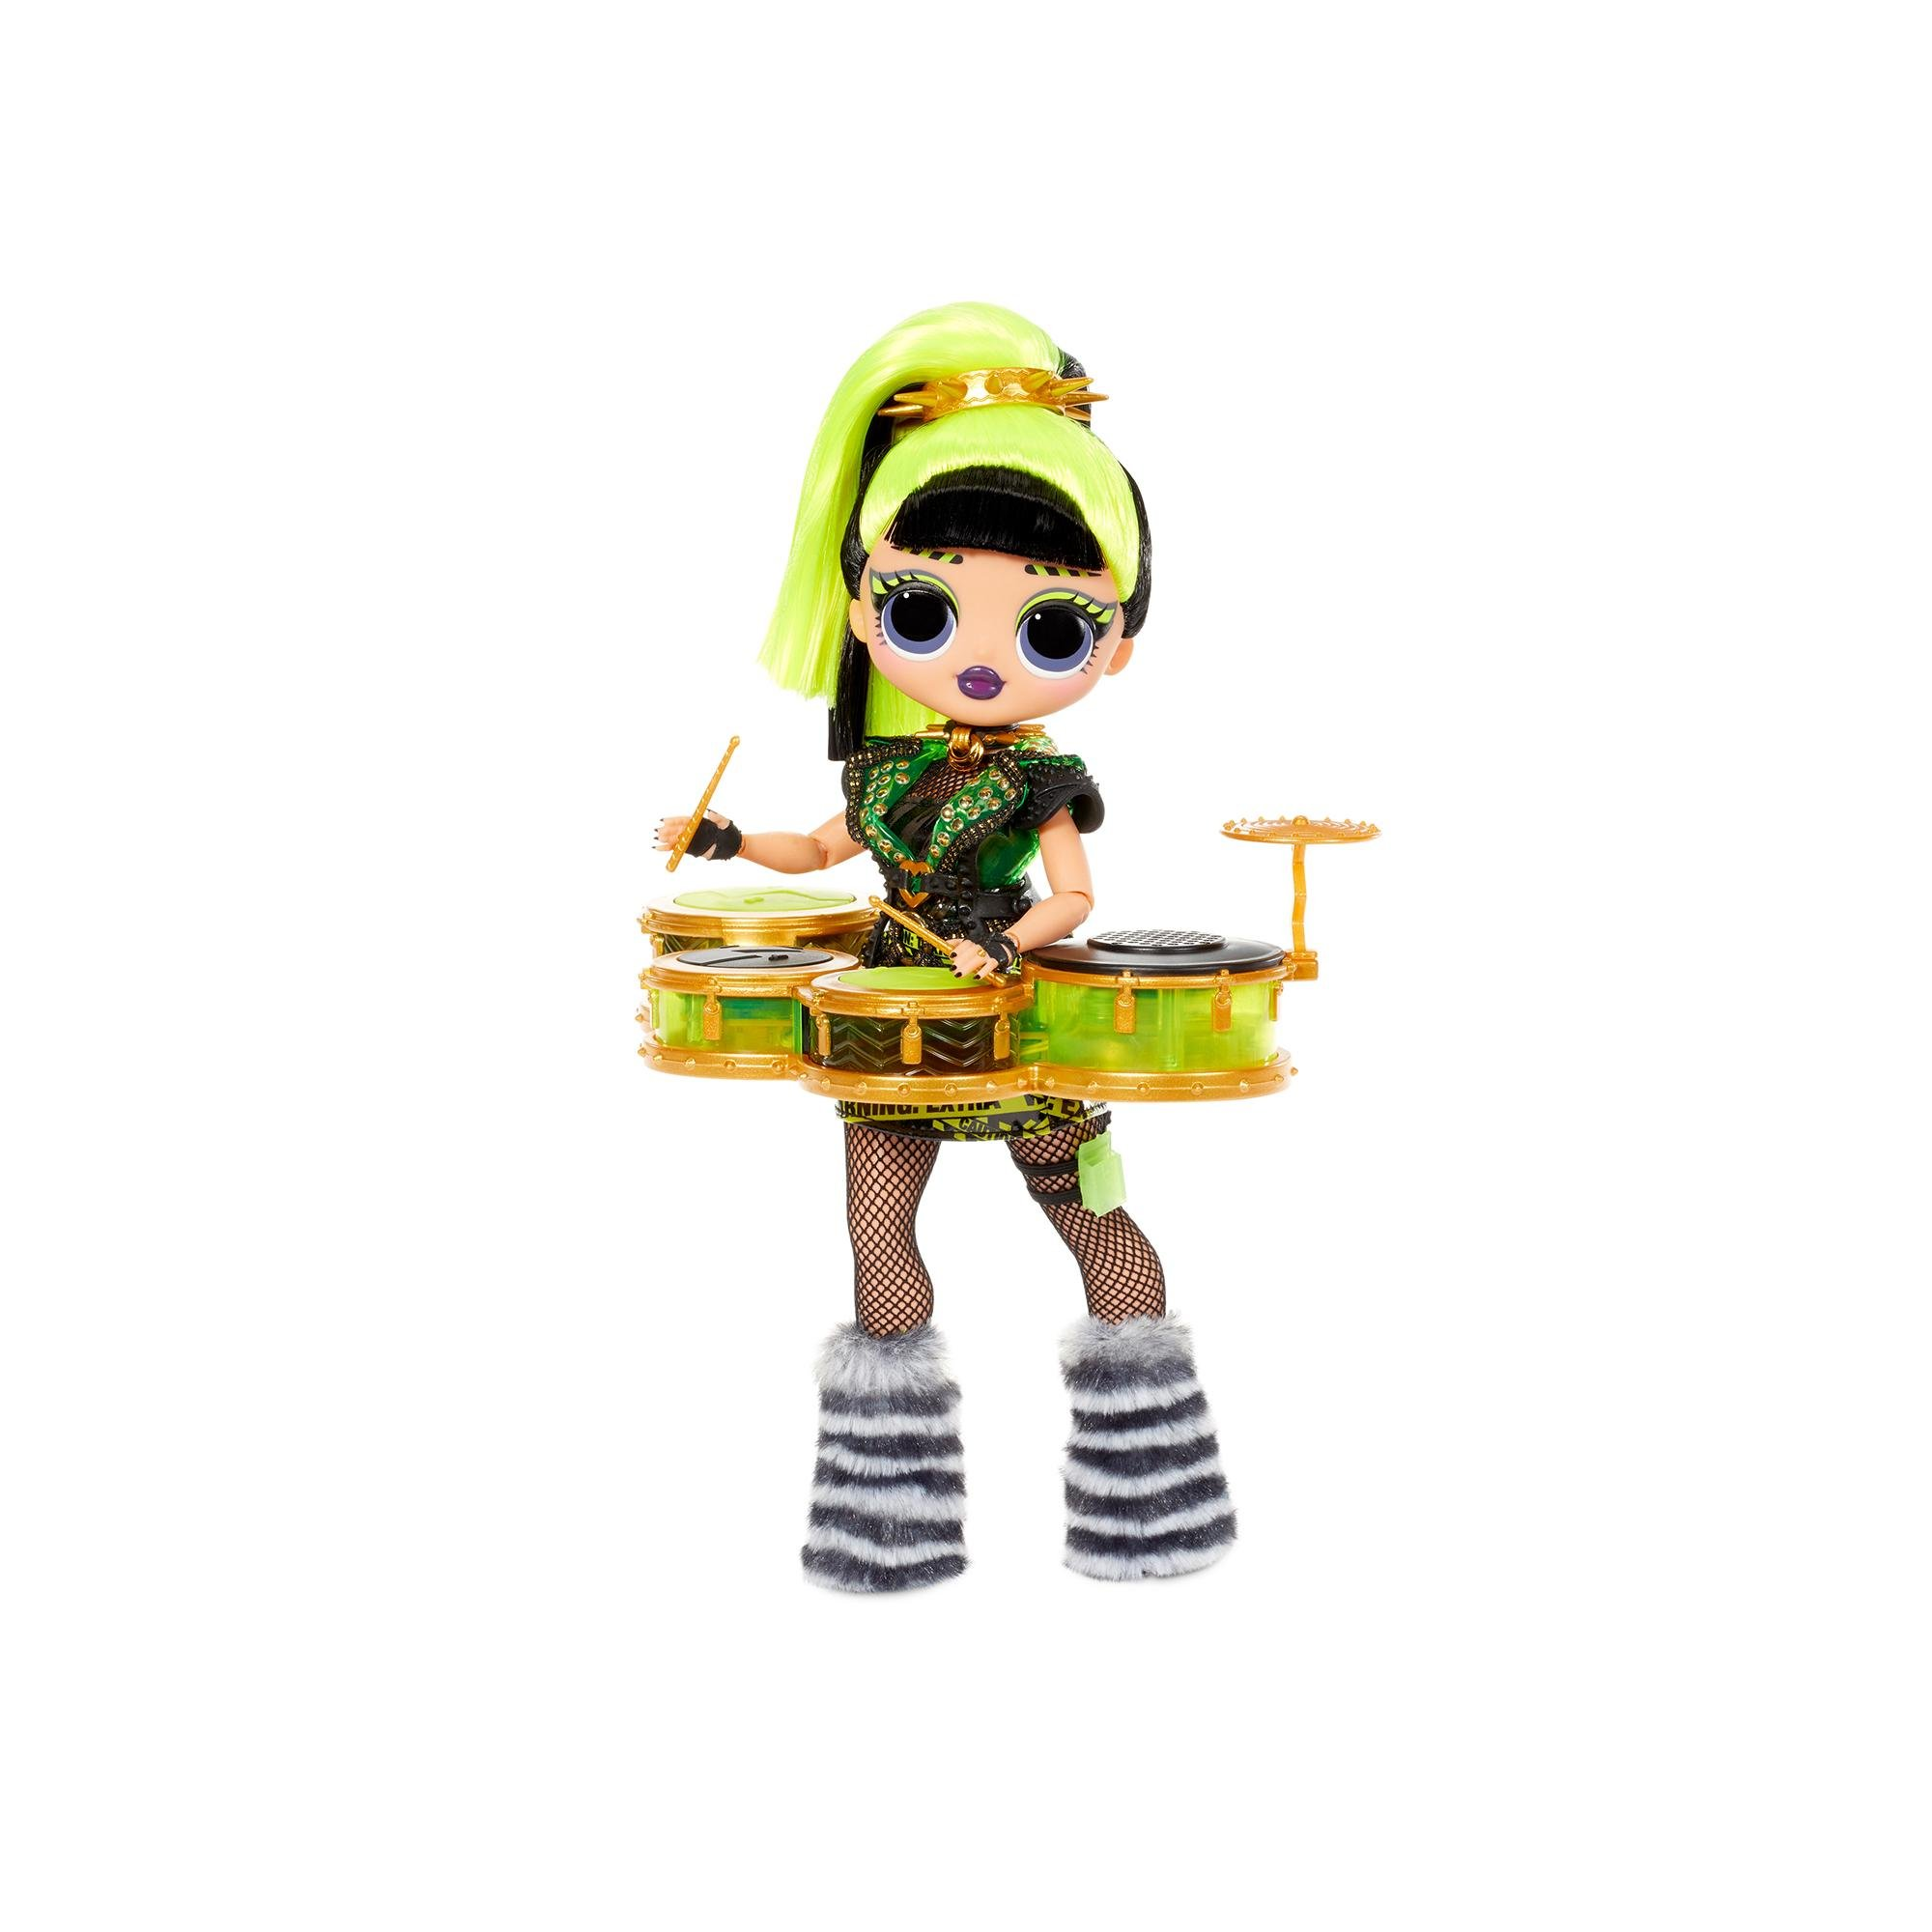 L.O.L. Surprise - OMG Remix Rock Doll - Bhad Gurl and Drums